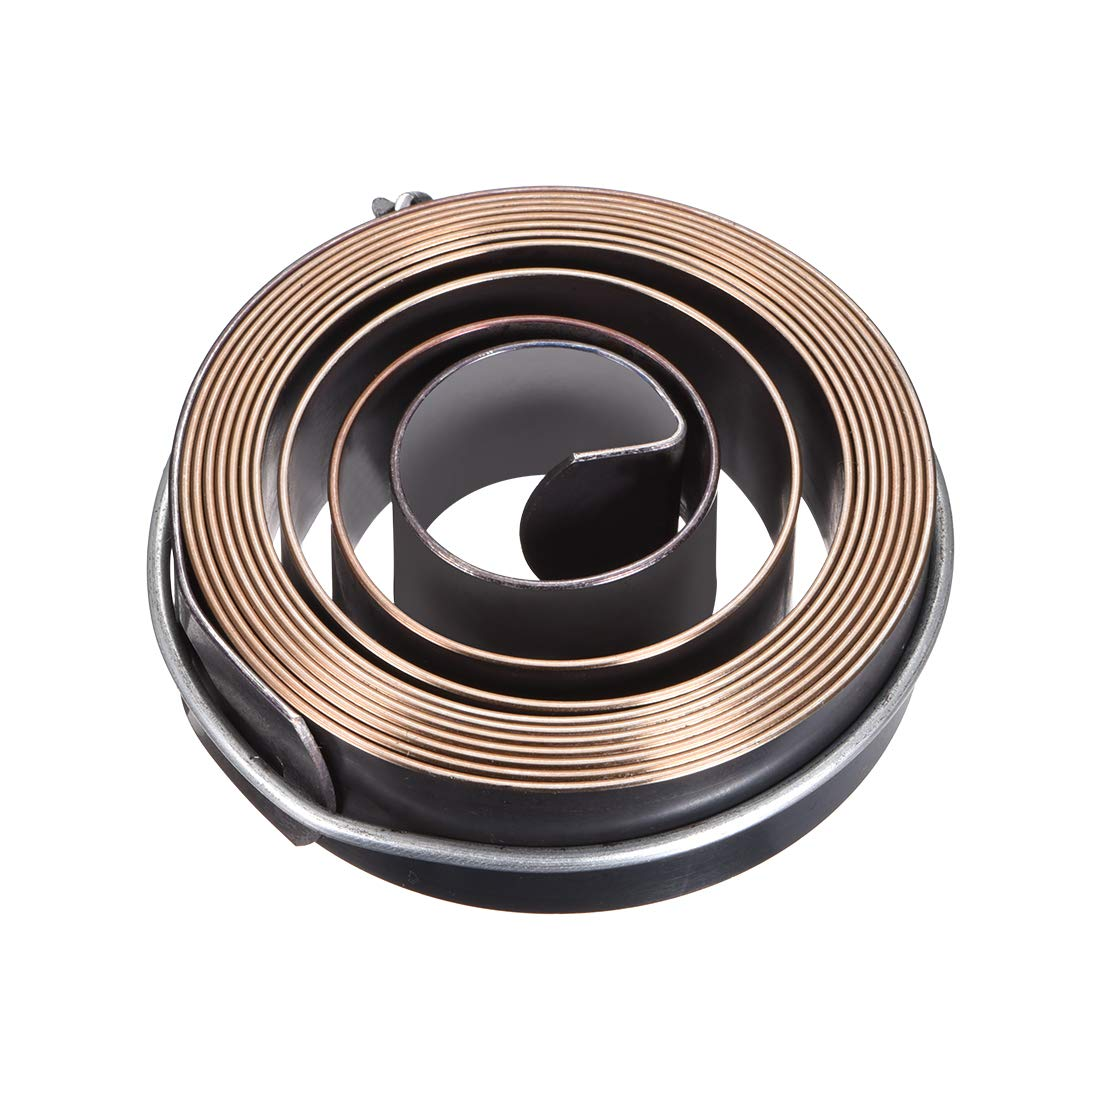 uxcell Drill Press Return Spring, Quill Spring Feed Return Coil Spring Assembly, 6Ft Length, 67mm x 19mm x 1mm